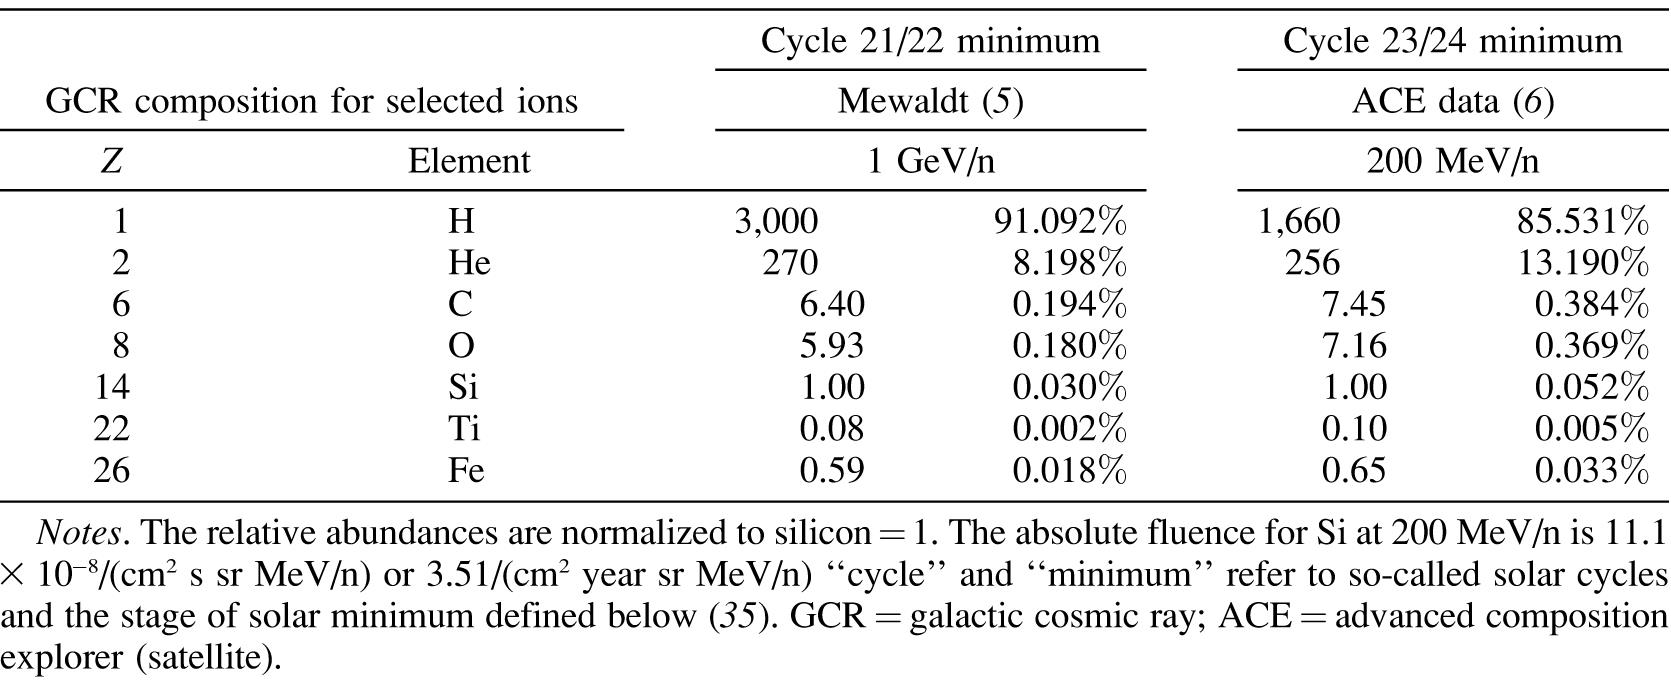 Space Radiation and Human Exposures, A Primer